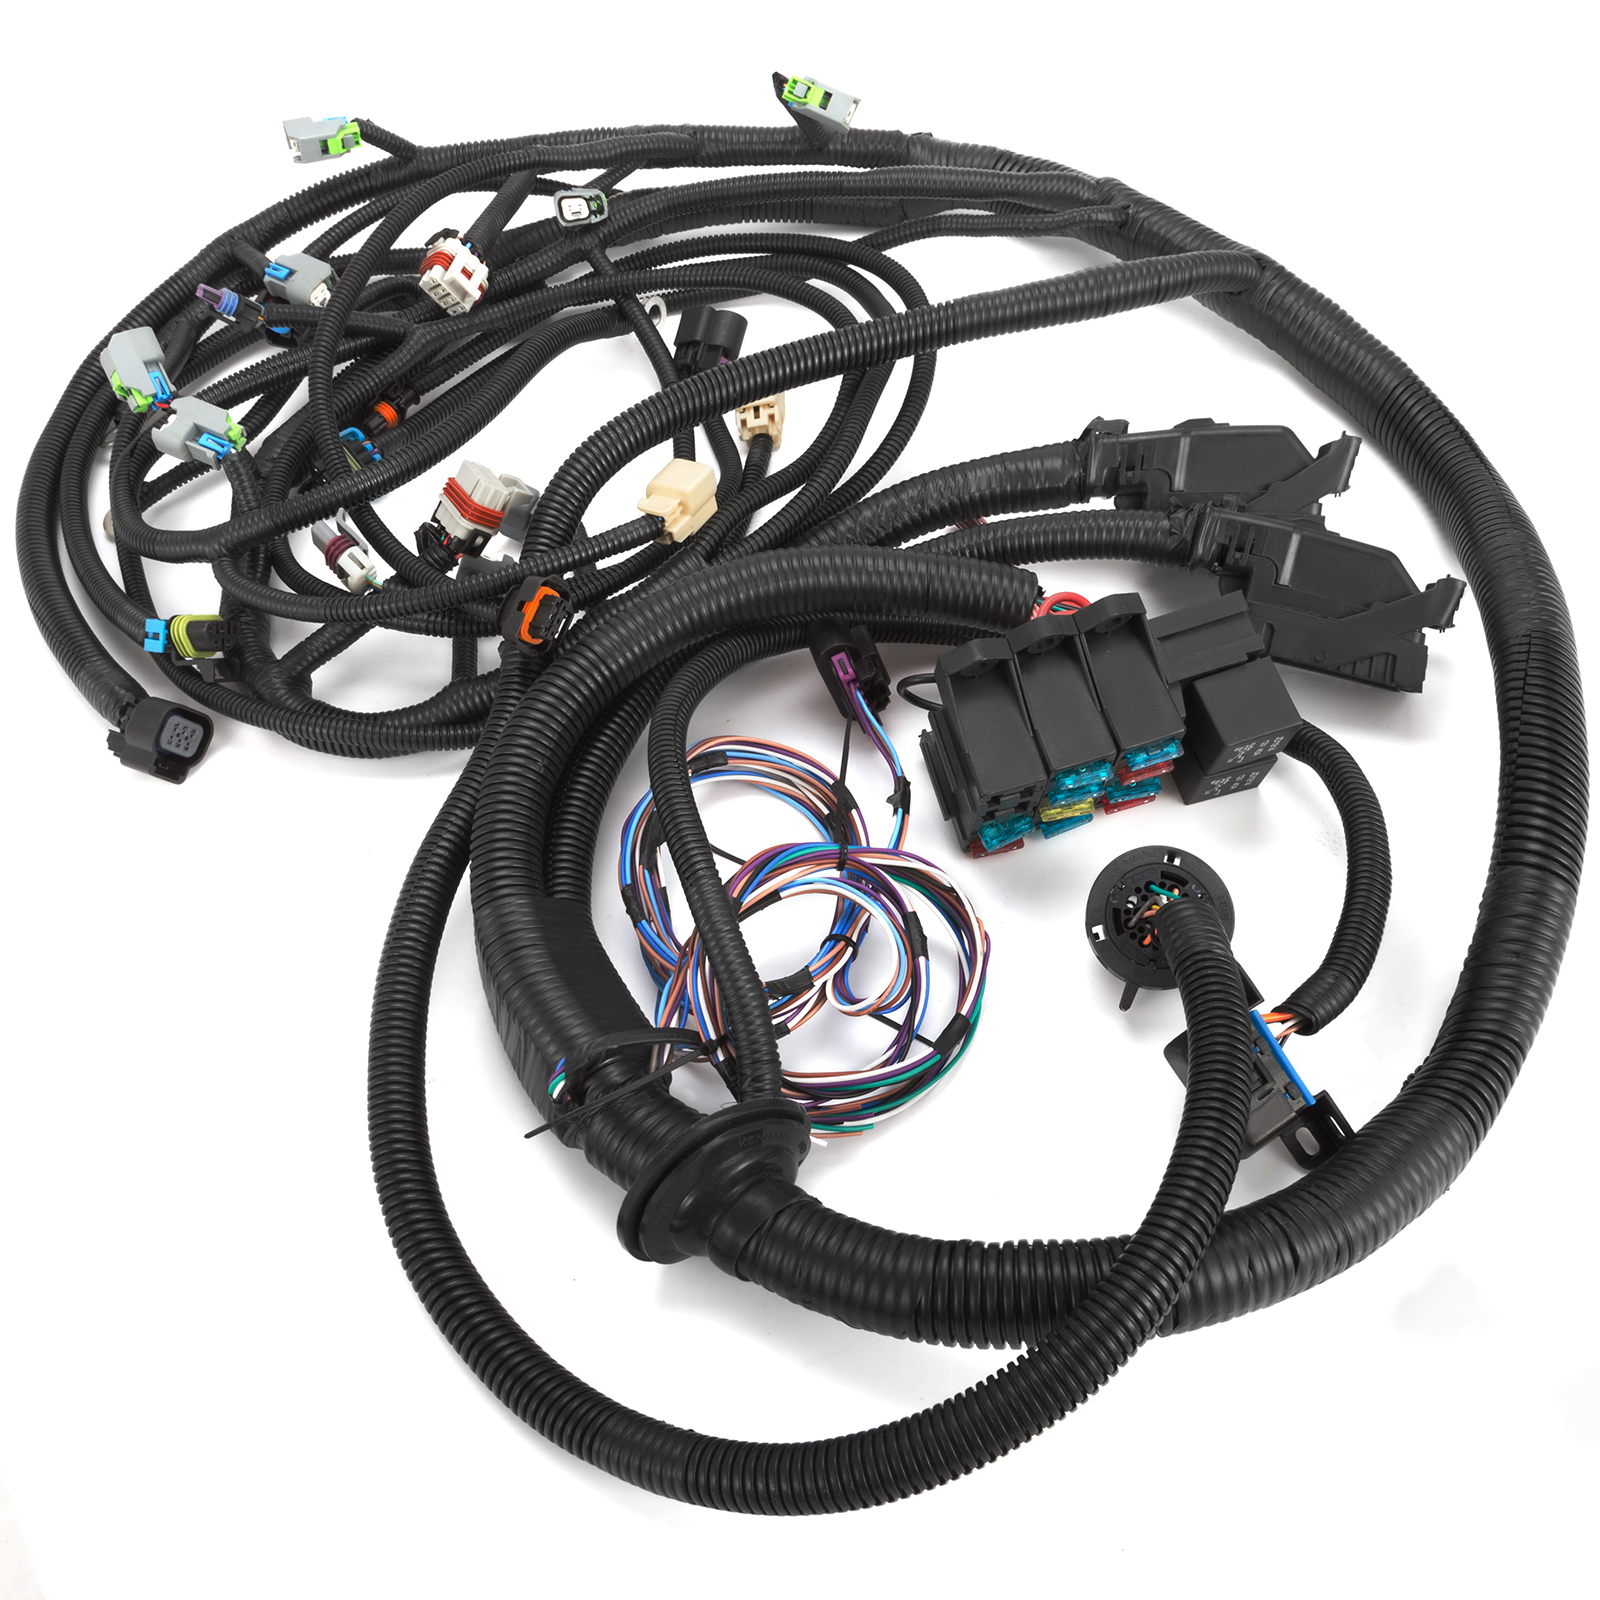 Set Standalone Wiring Harness With 6l80e For 2008